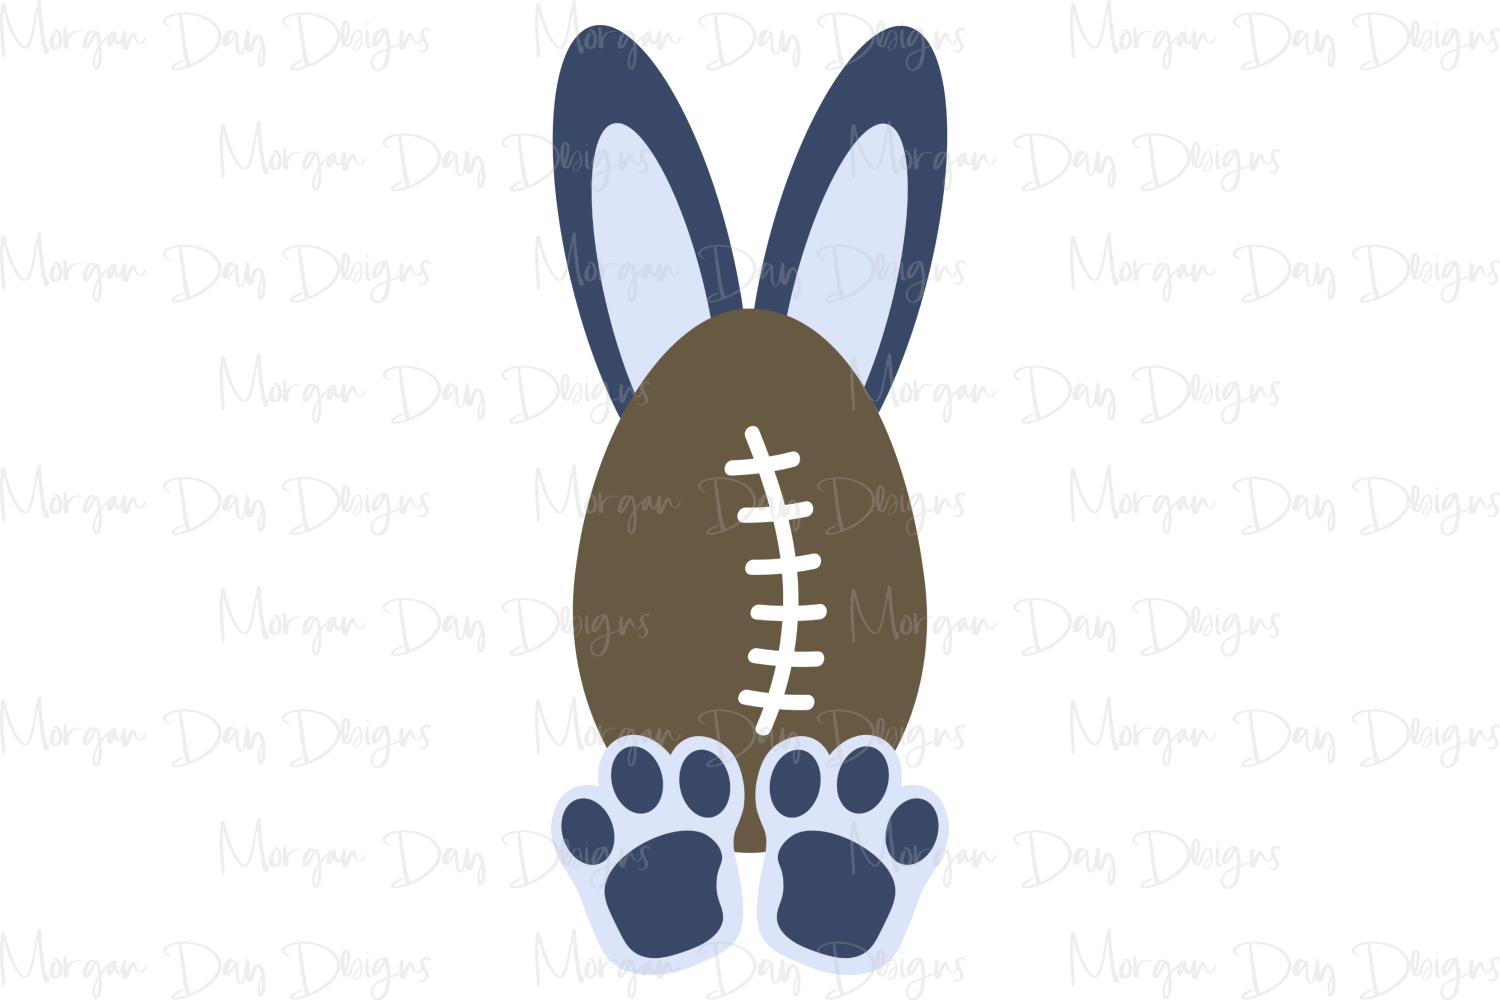 Football Bunny - Easter SVG, DXF, AI, EPS, PNG, JPEG example image 3